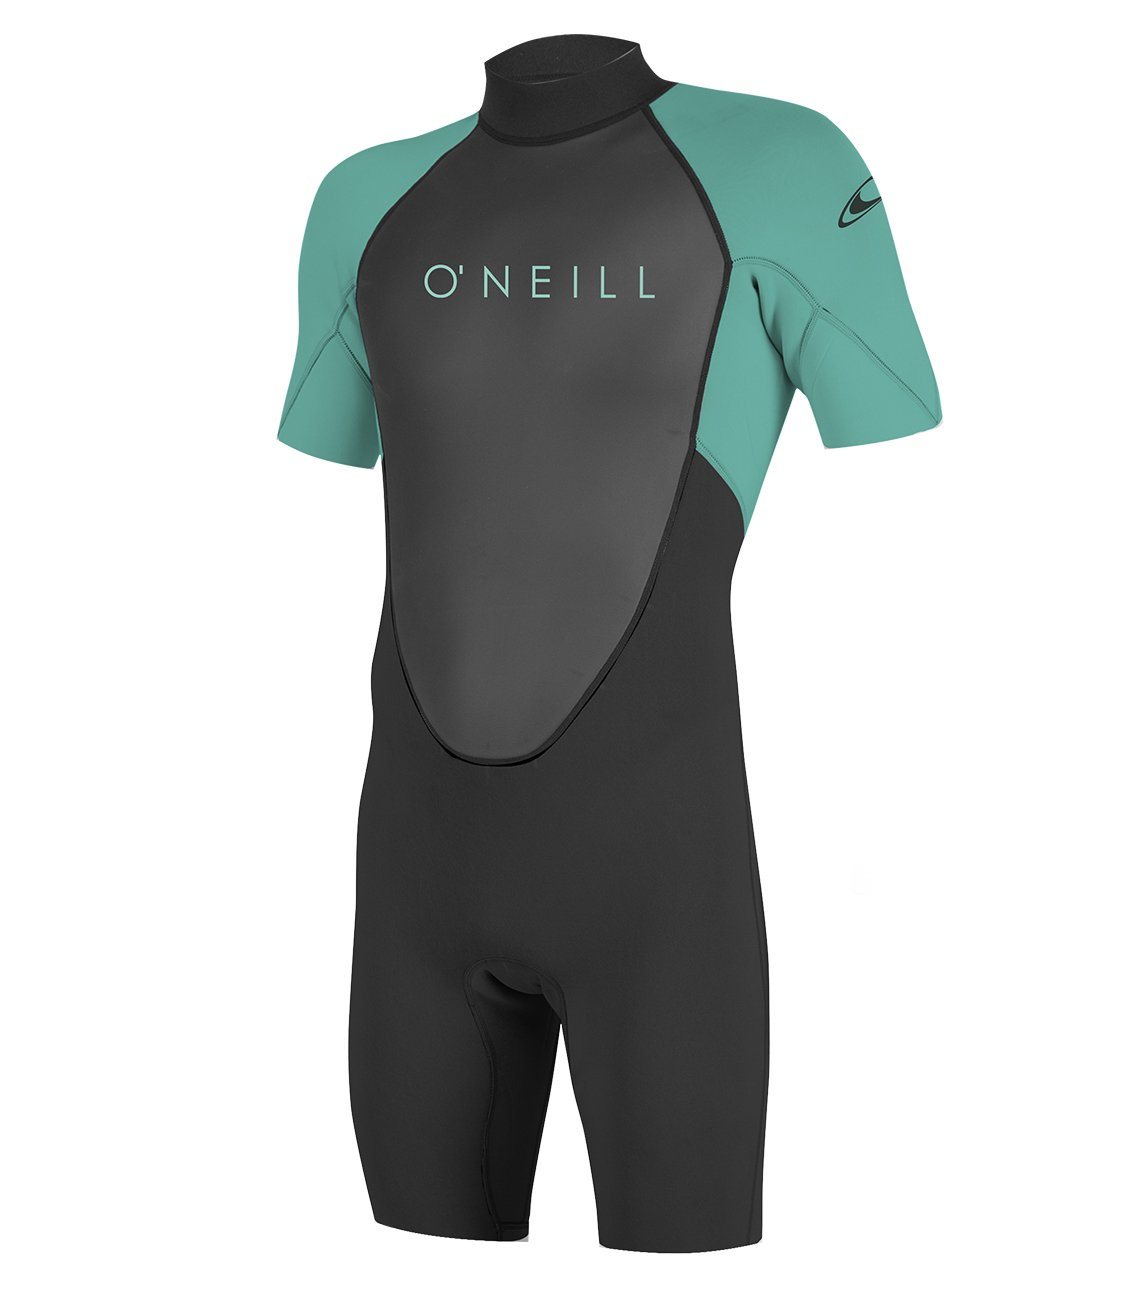 O'Neill Youth Reactor-2 2mm Back Zip Short Sleeve Spring Wetsuit, Black/Aqua, 16 by O'Neill Wetsuits